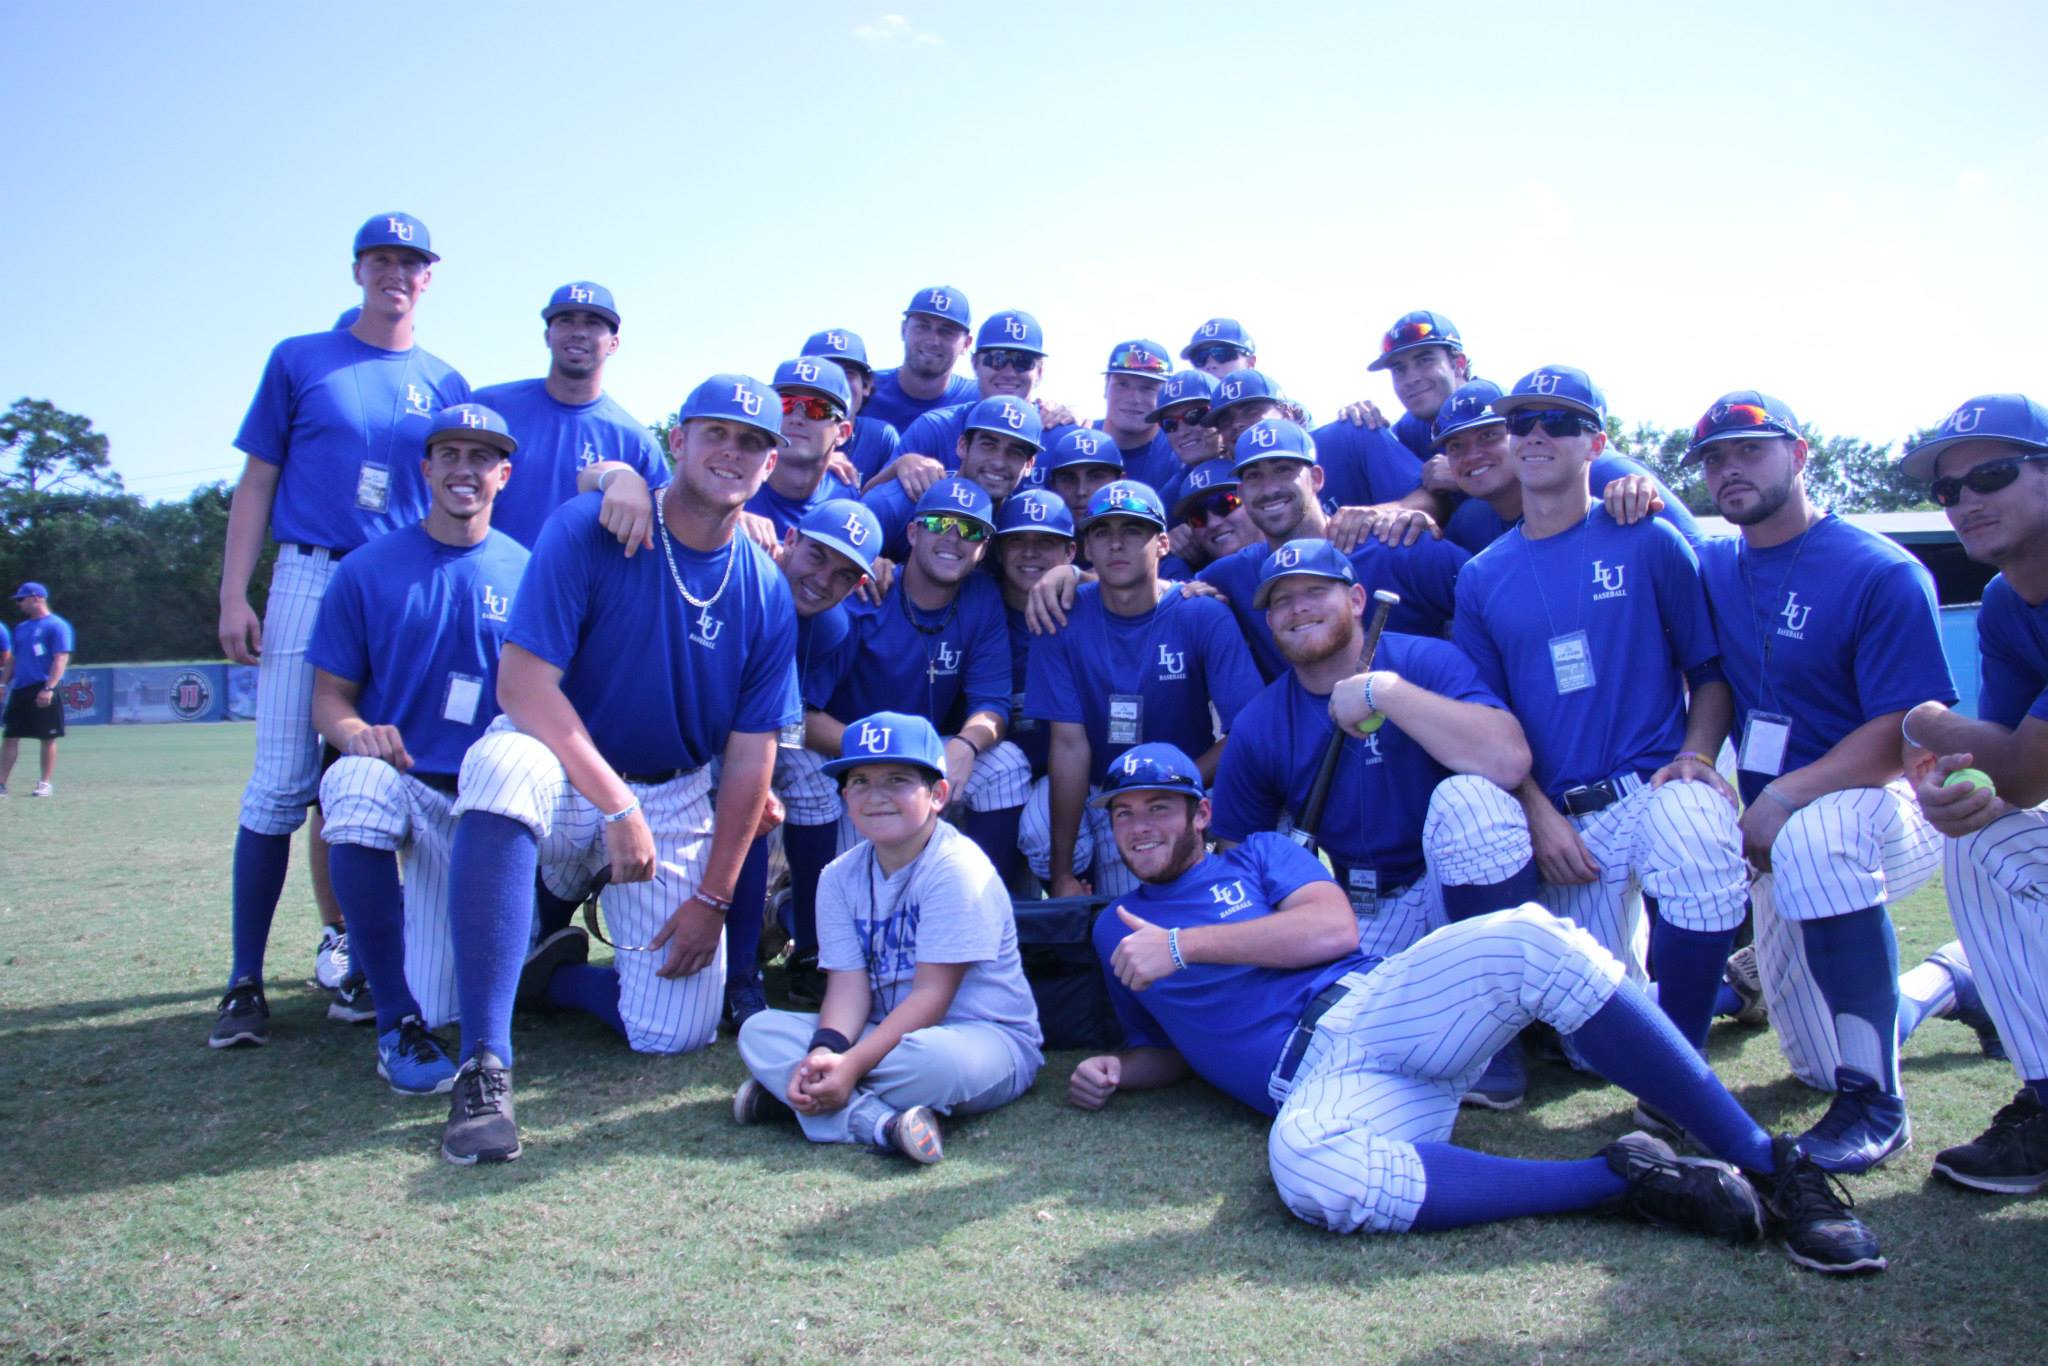 CBS Sports Network feature on Ari and the Lynn University Baseball Team